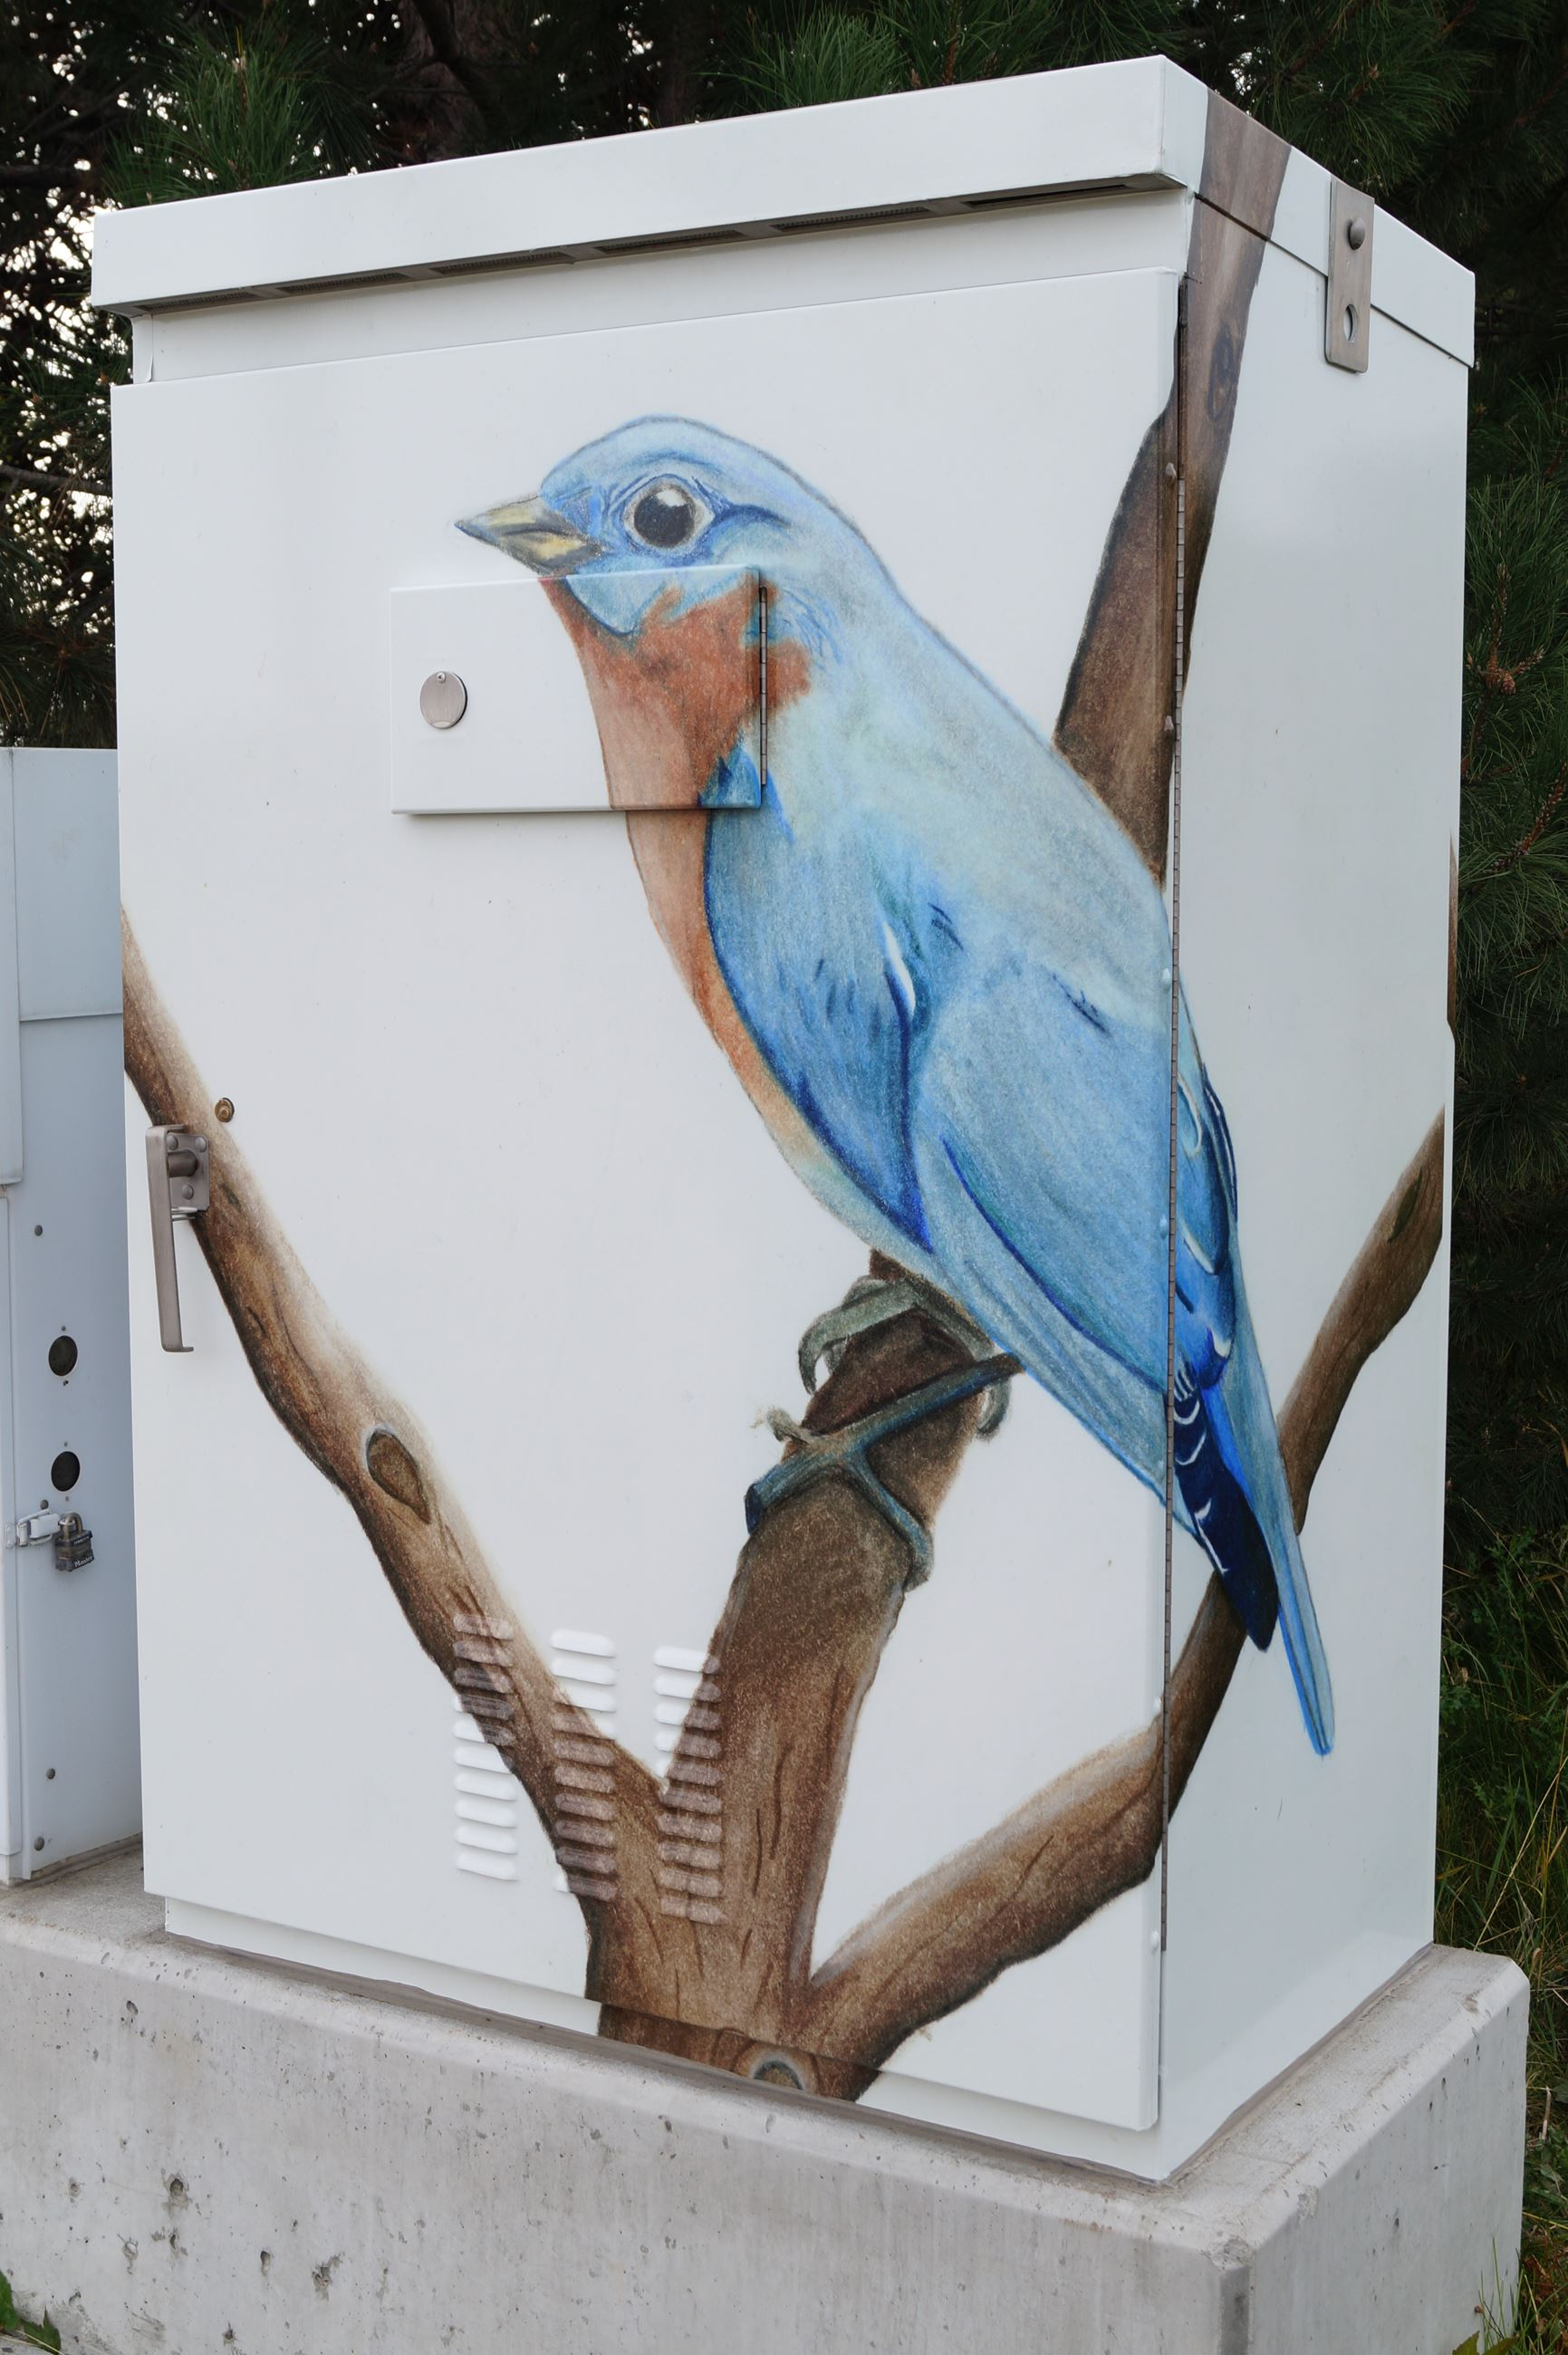 Electrical box with a painting of a bluebird on it.